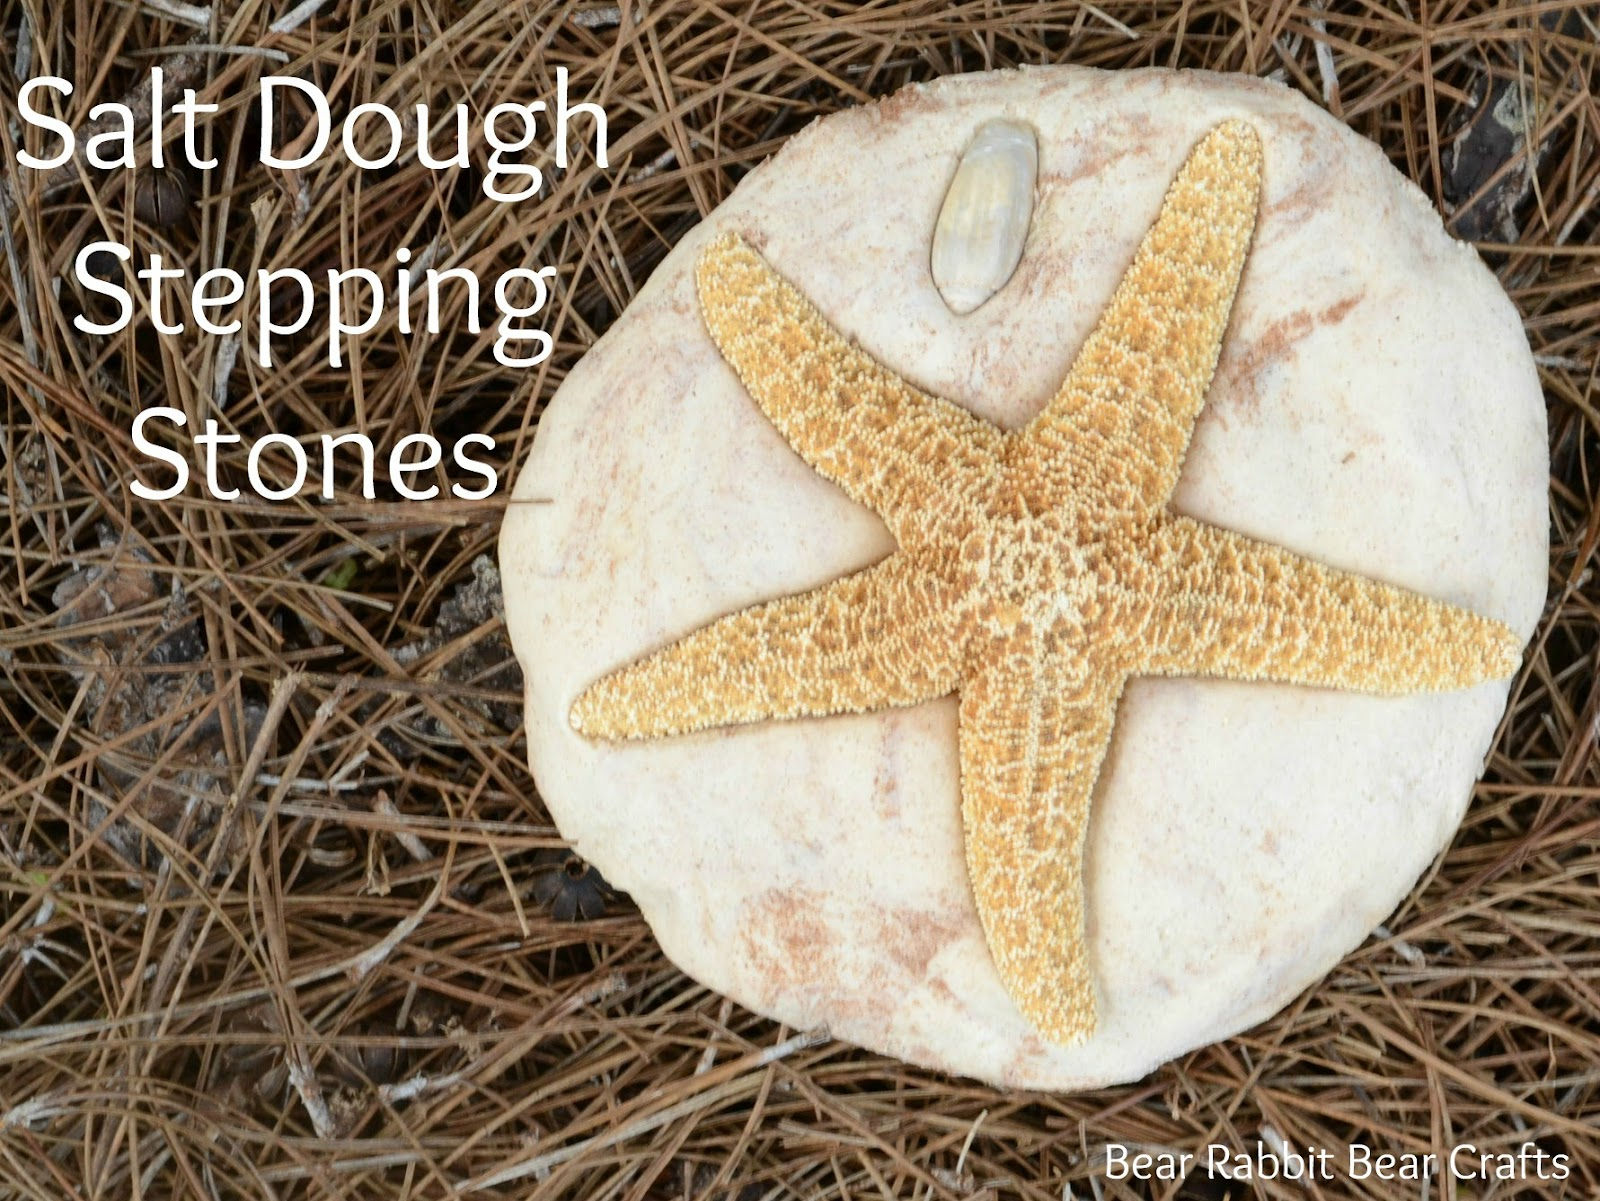 AD-Beautiful-DIY-Stepping-Stone-Ideas-To-Decorate-Your-Garden-25